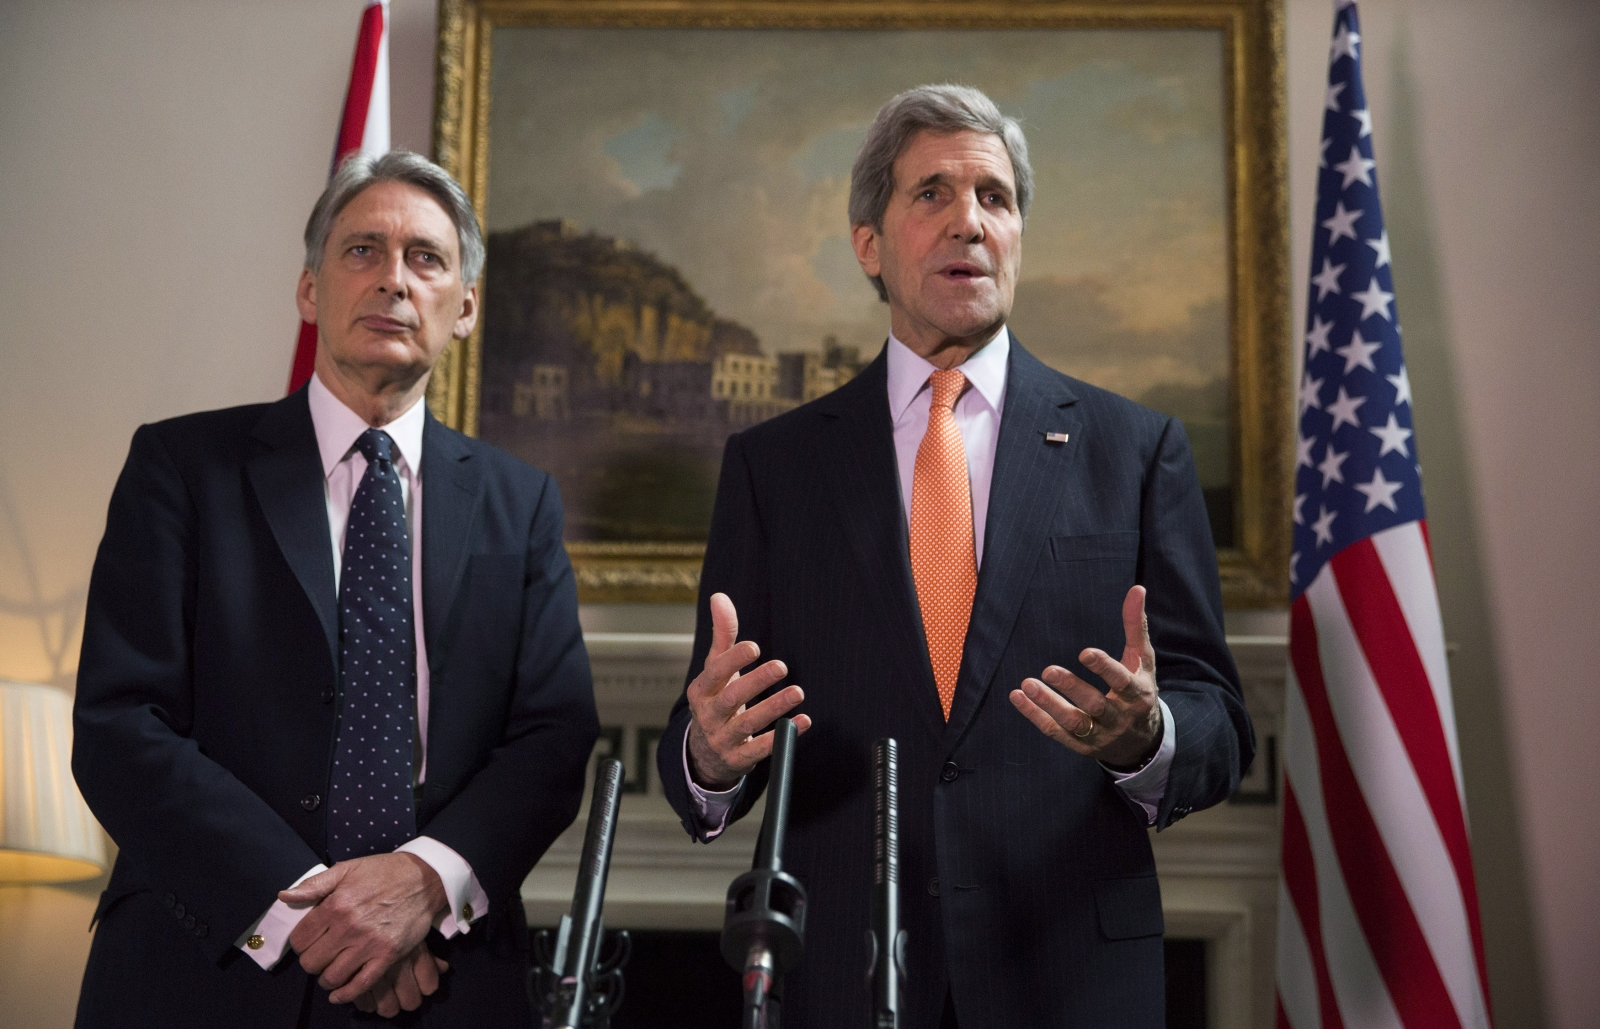 Britain's Foreign Secretary Phillip Hammond and U.S. Secretary of State John Kerry (R) deliver a statement at a press conference in London